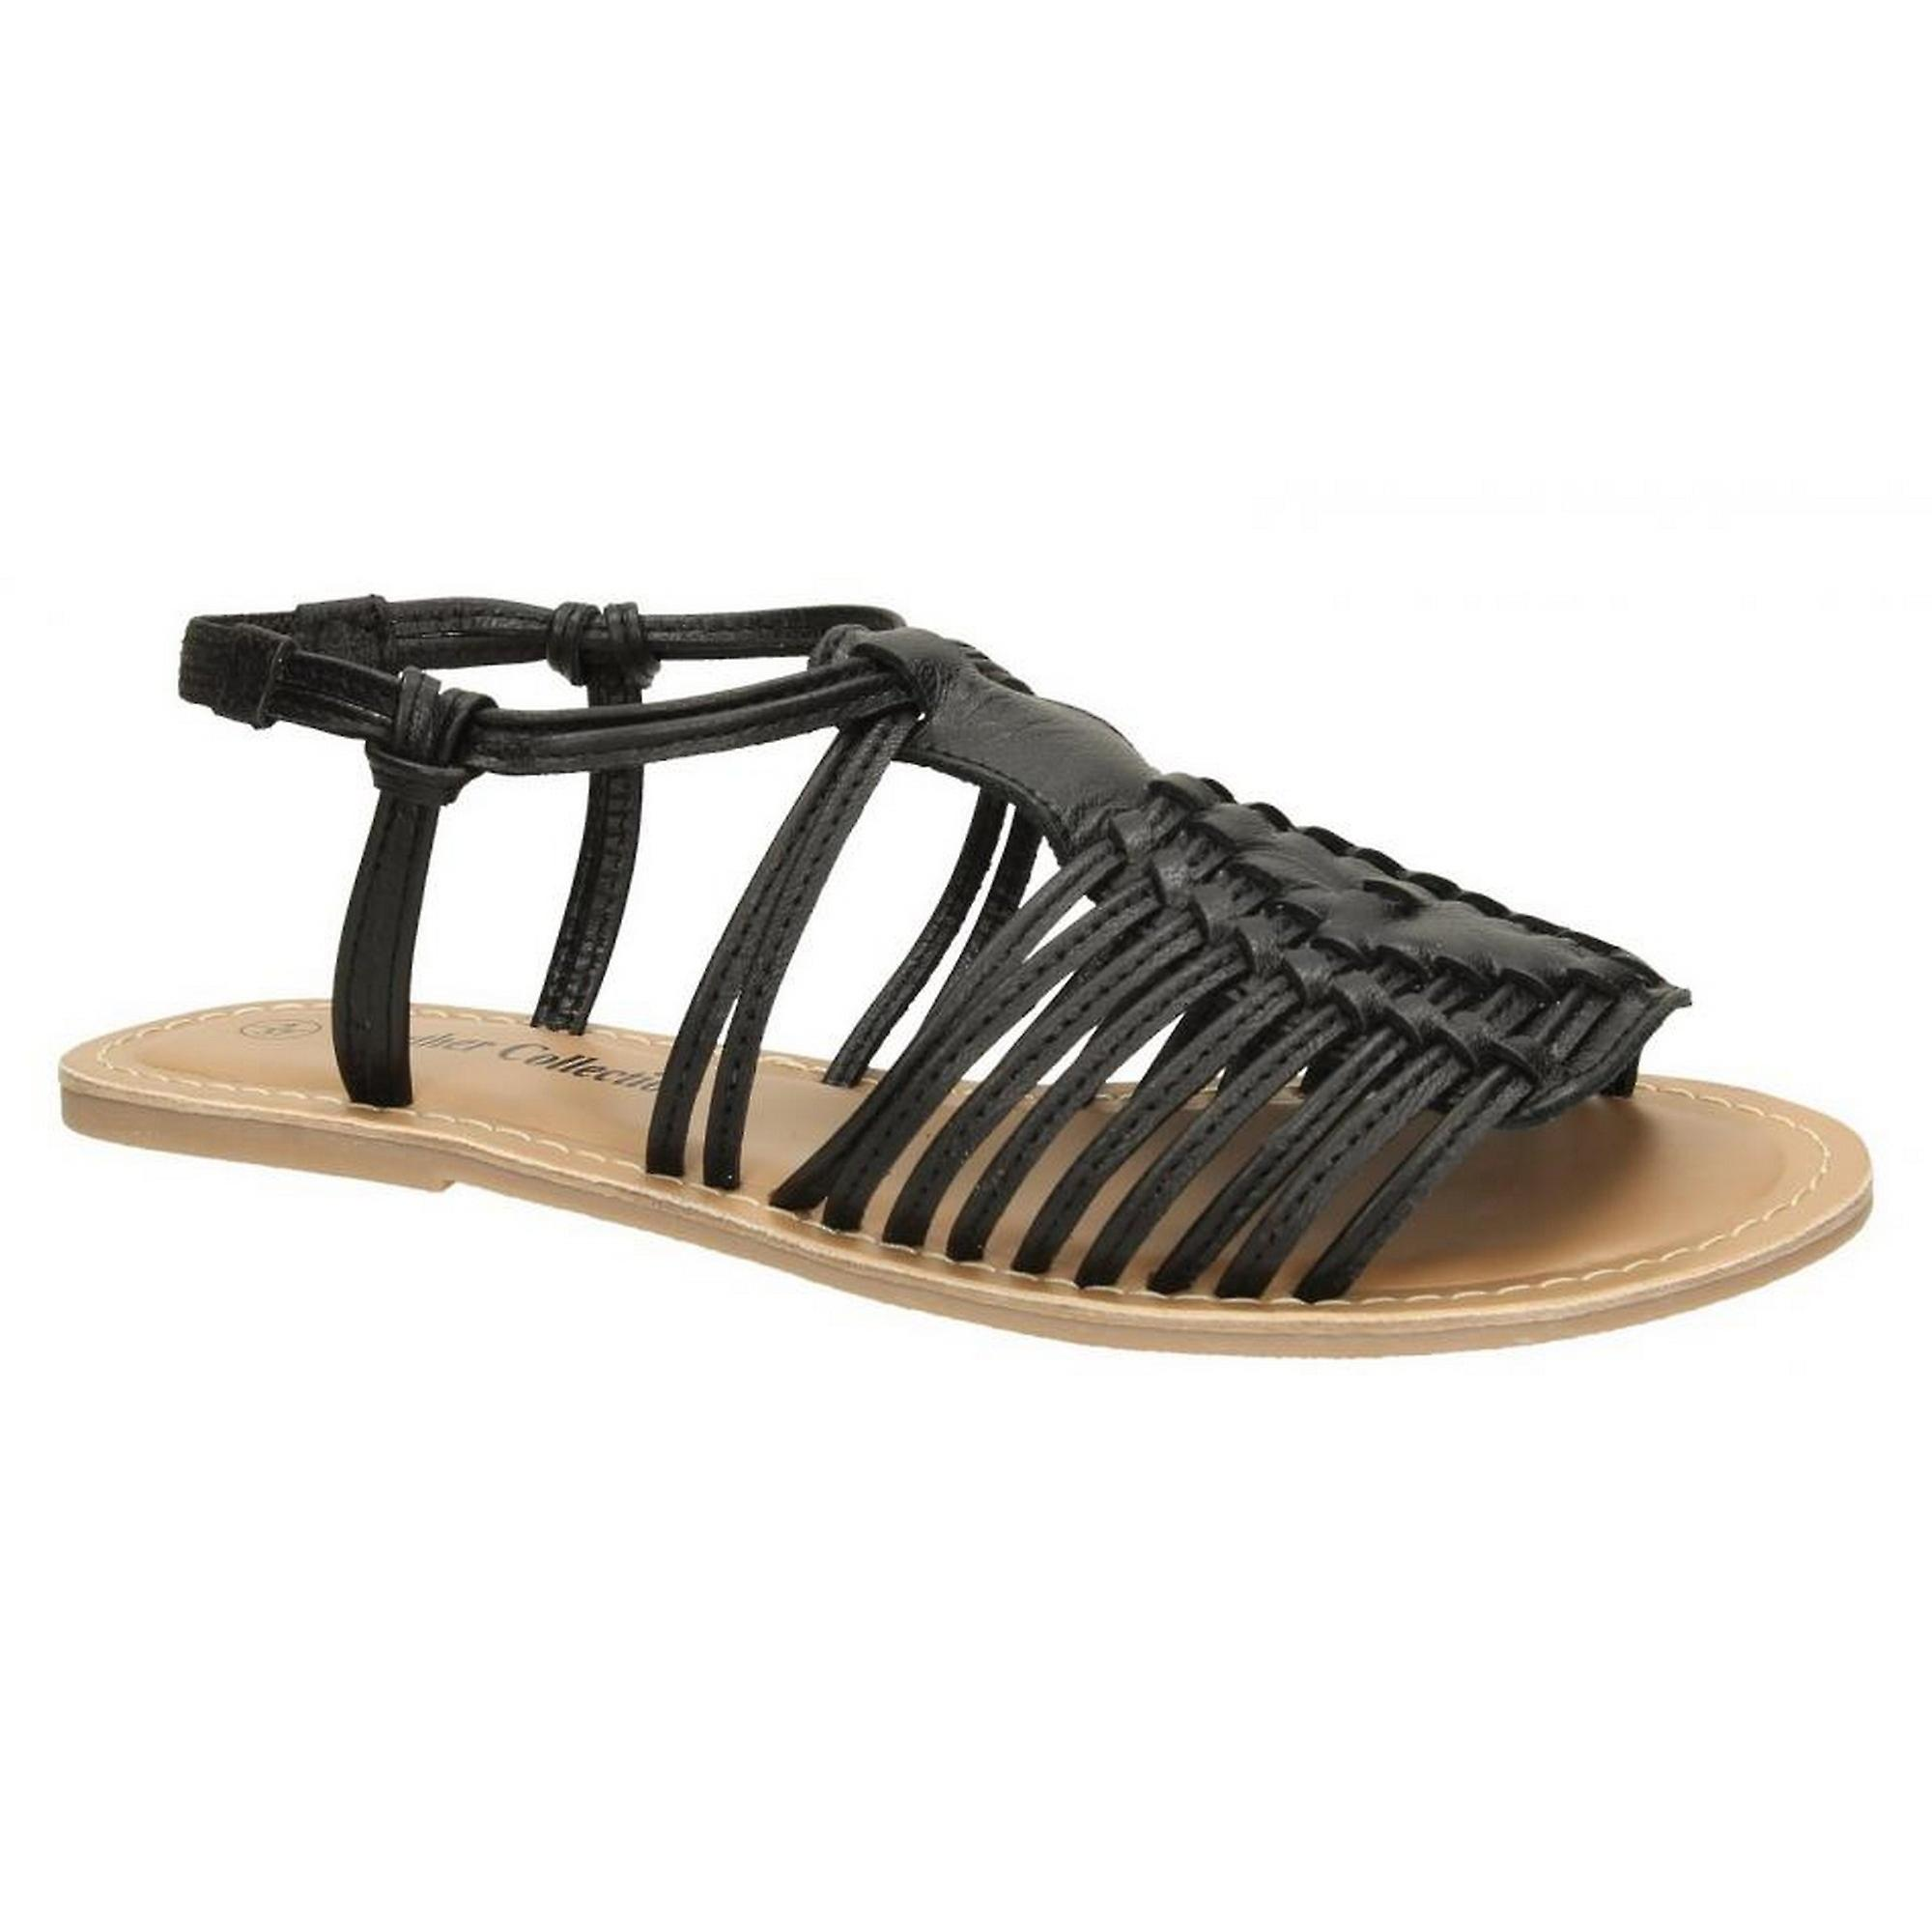 Leather Collection Womens/Ladies Leather Flat Strappy Sandals dGrOm